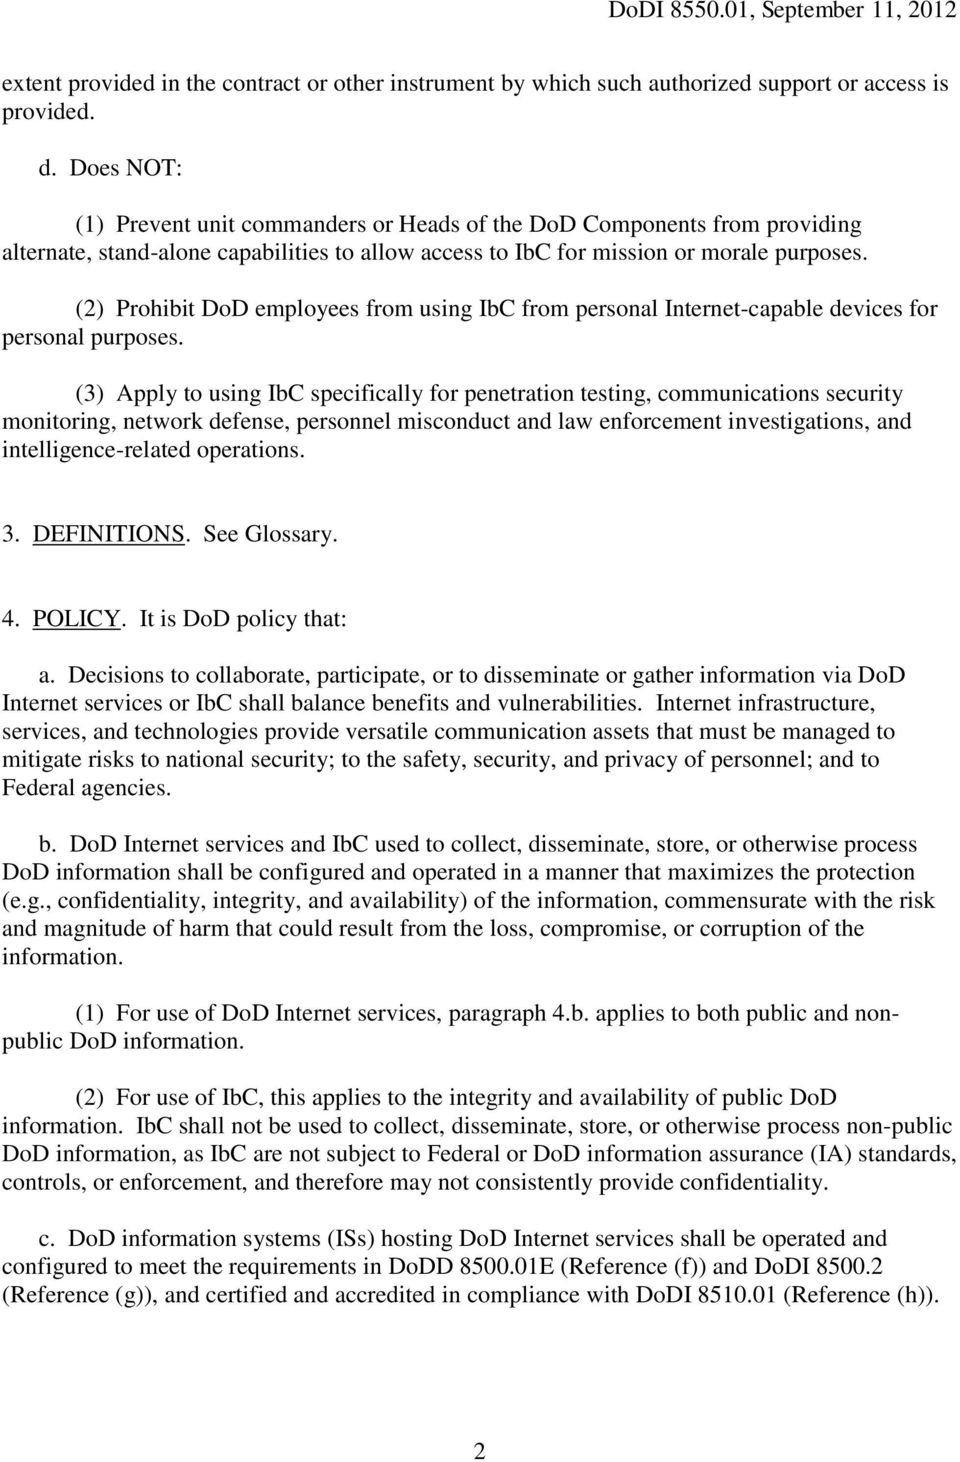 (2) Prohibit DoD employees from using IbC from personal Internet-capable devices for personal purposes.